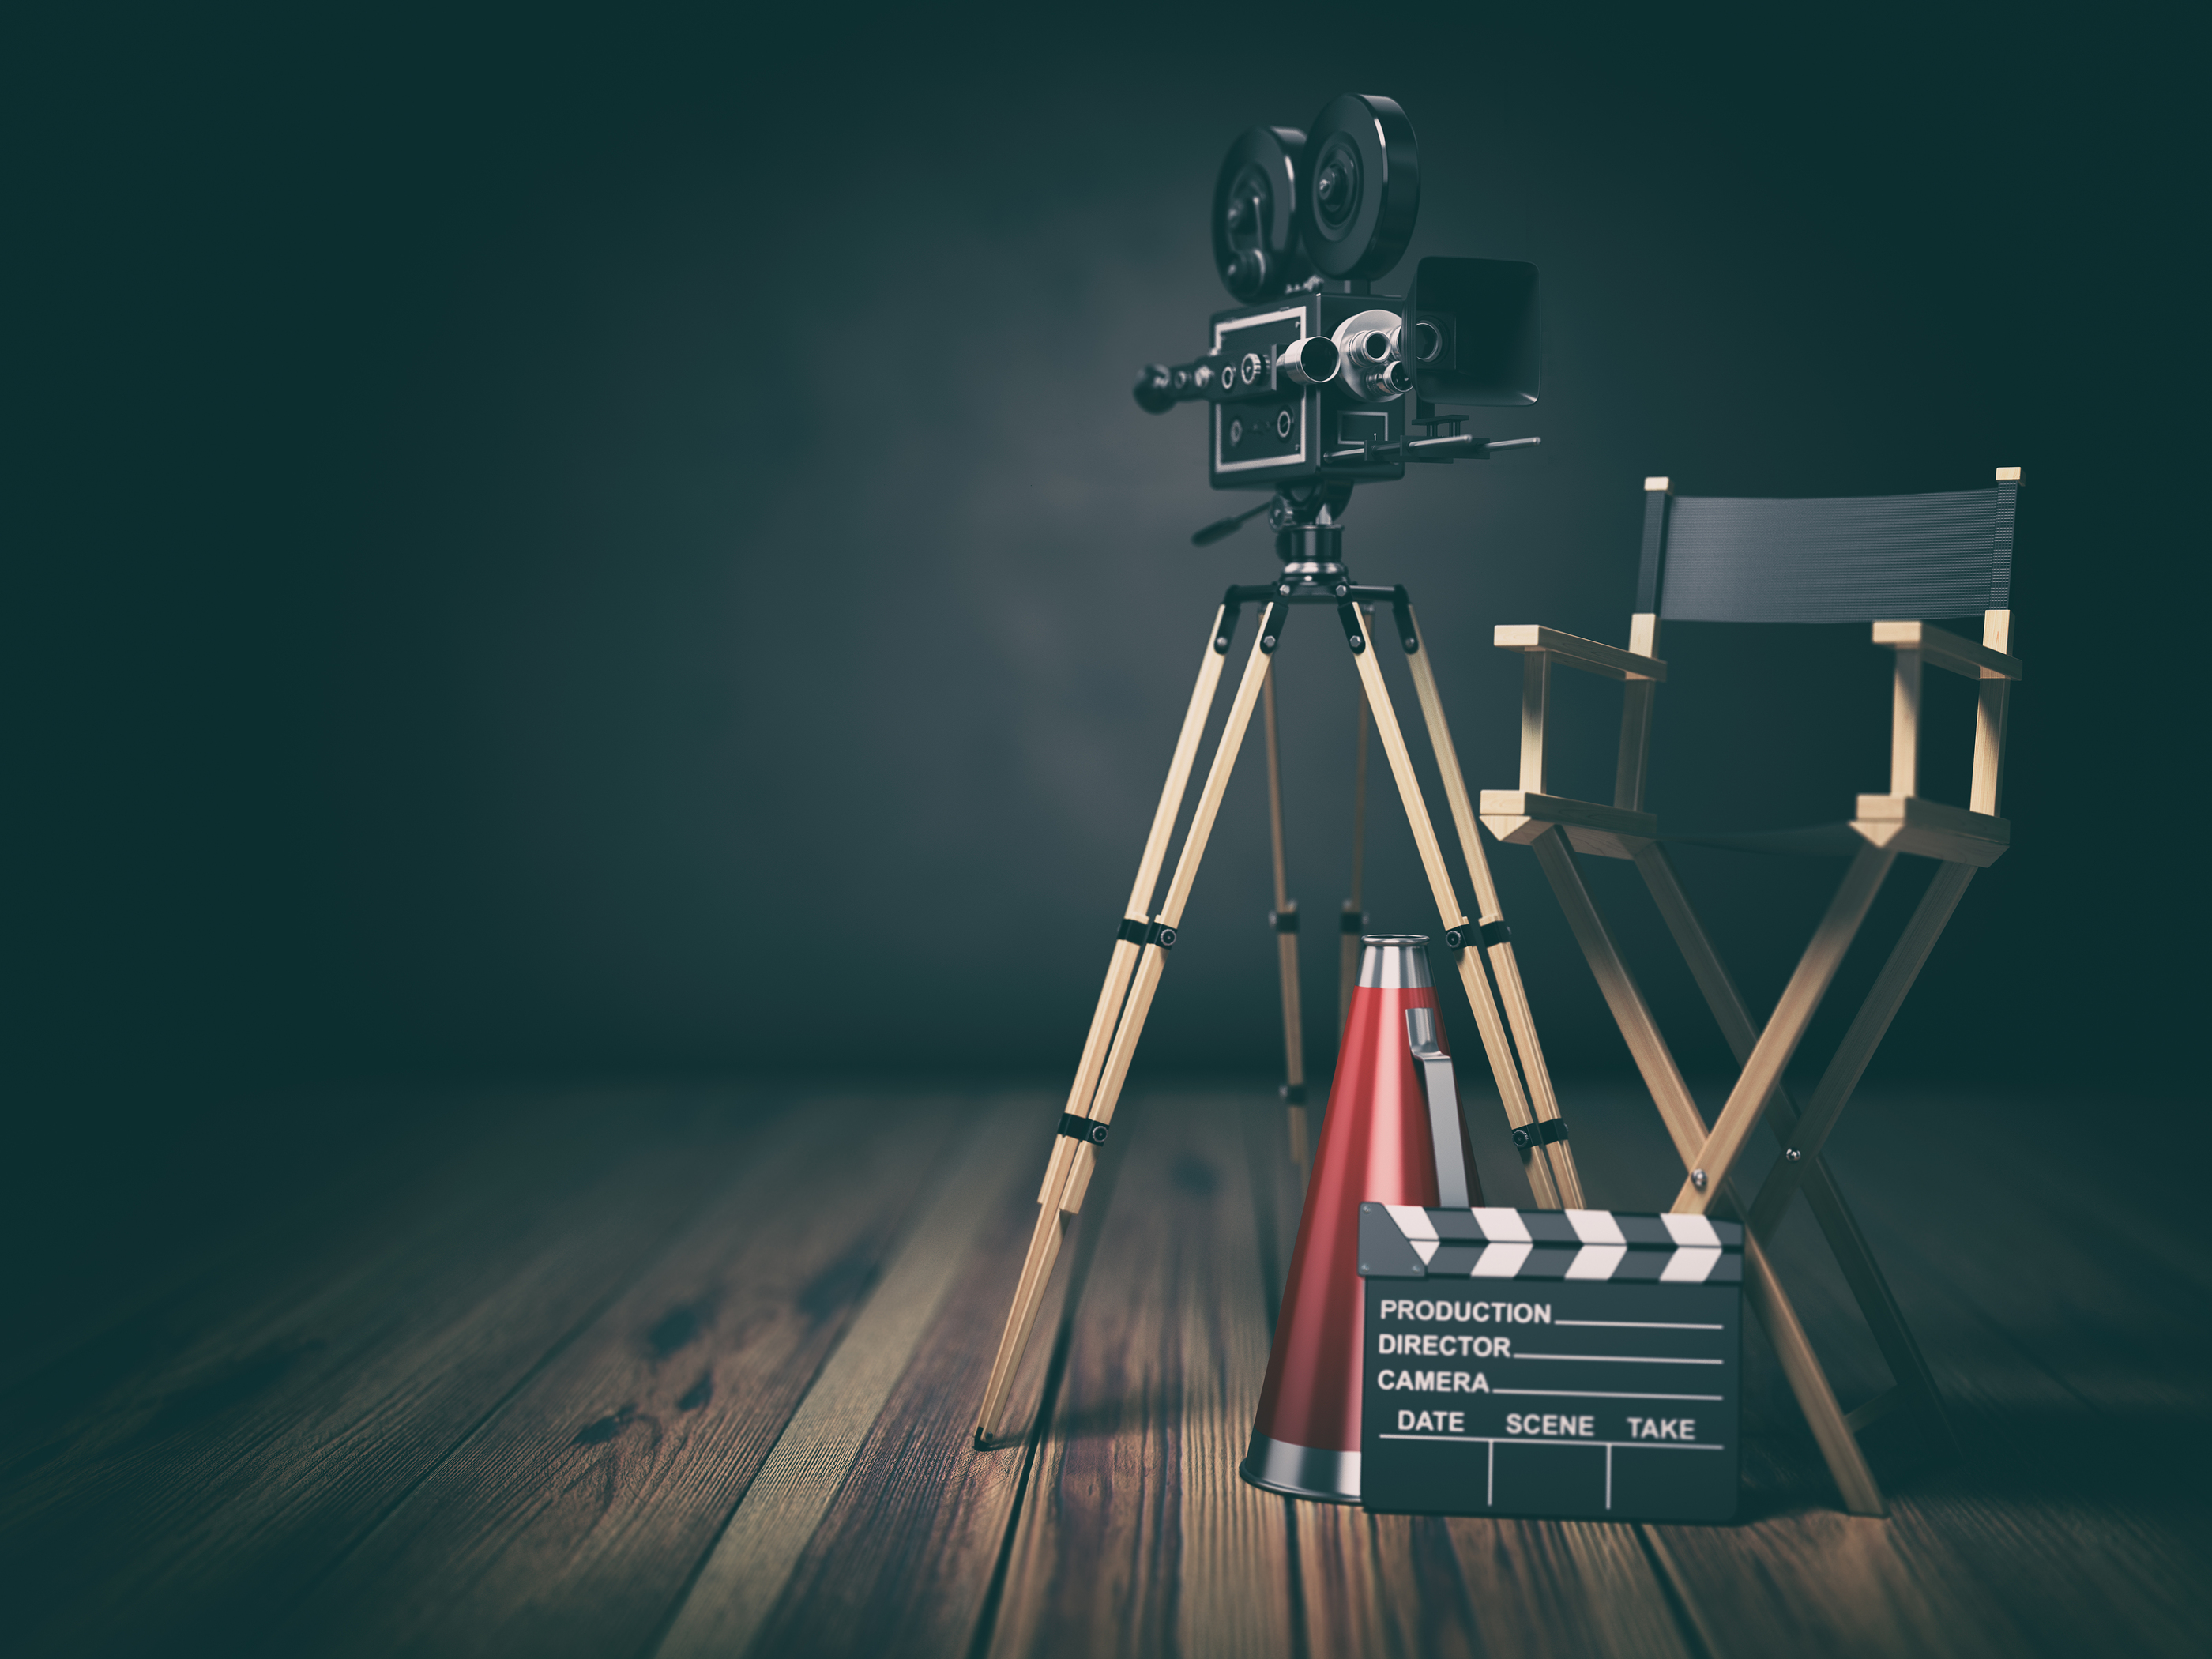 Video, movie, cinema concept. Retro camera, clapperboard and director chair. 3d illustration